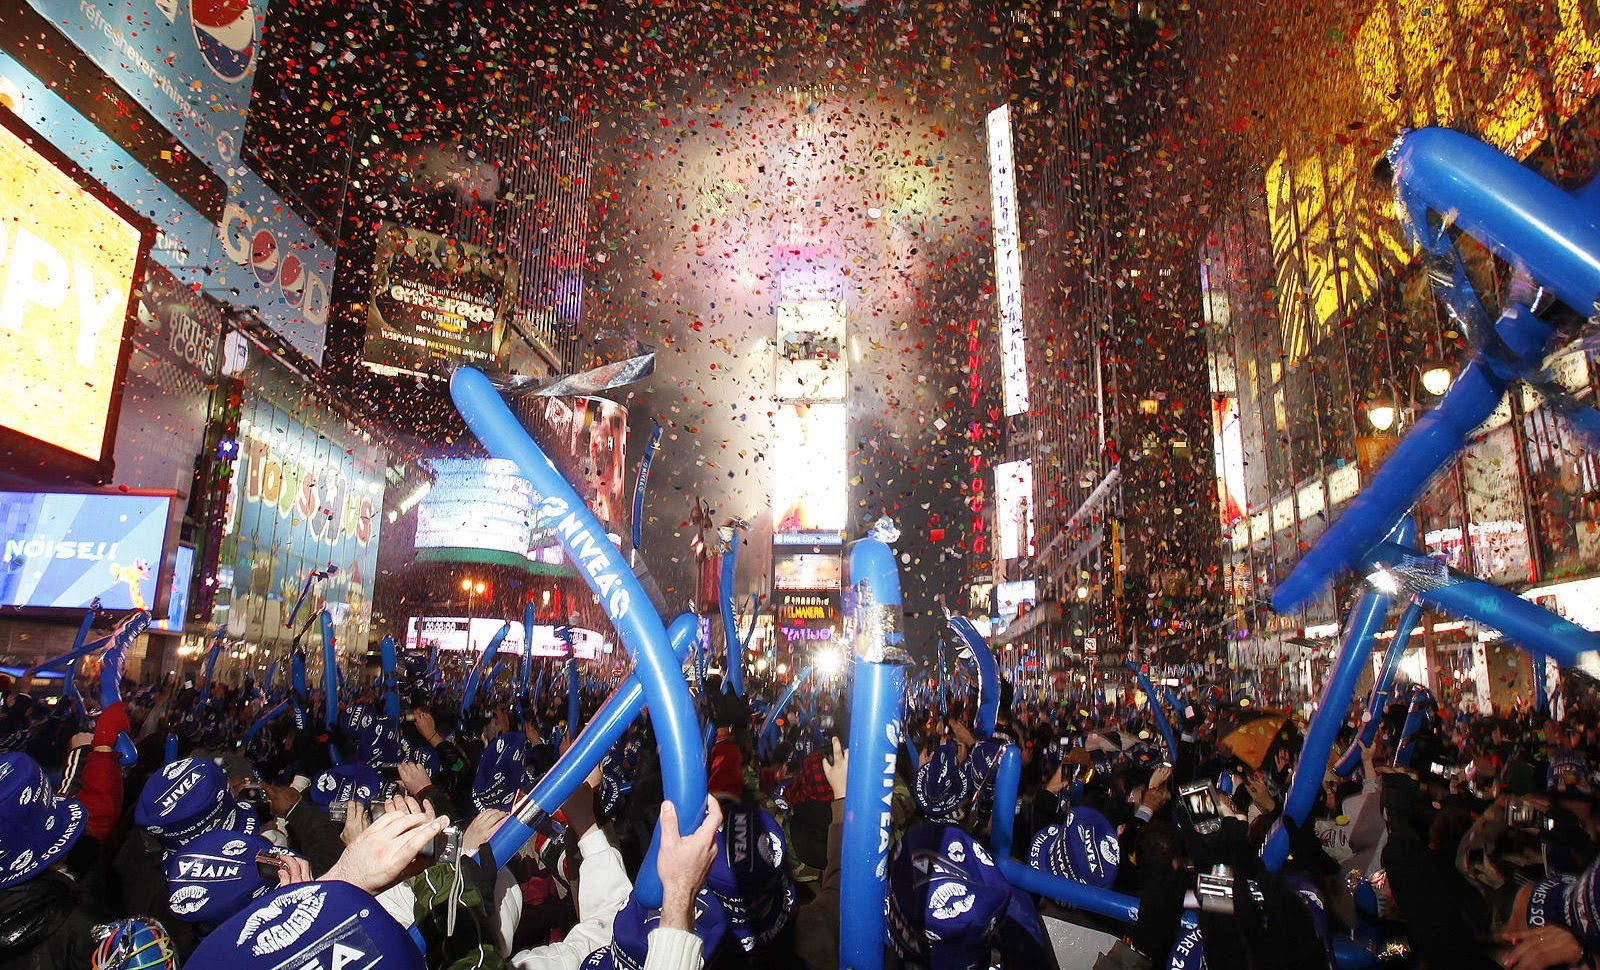 here we are sharing some exclusive grand time square new york new year eve celebration photos wallpapers for you so you can get ideas that how awesome